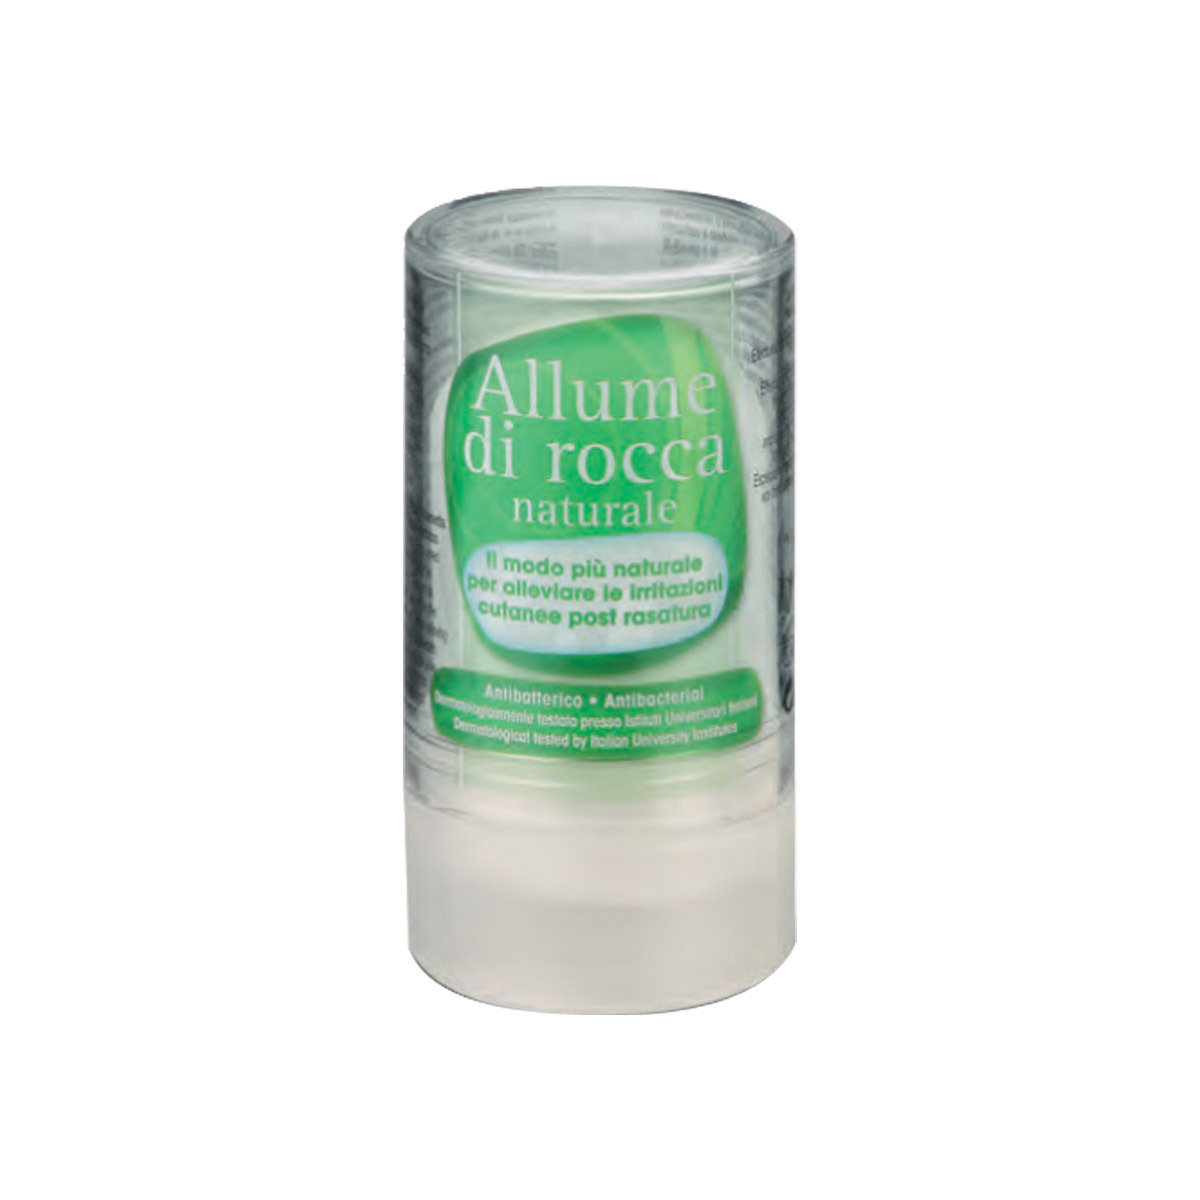 ALLUME Natural Body Crystal AC335C